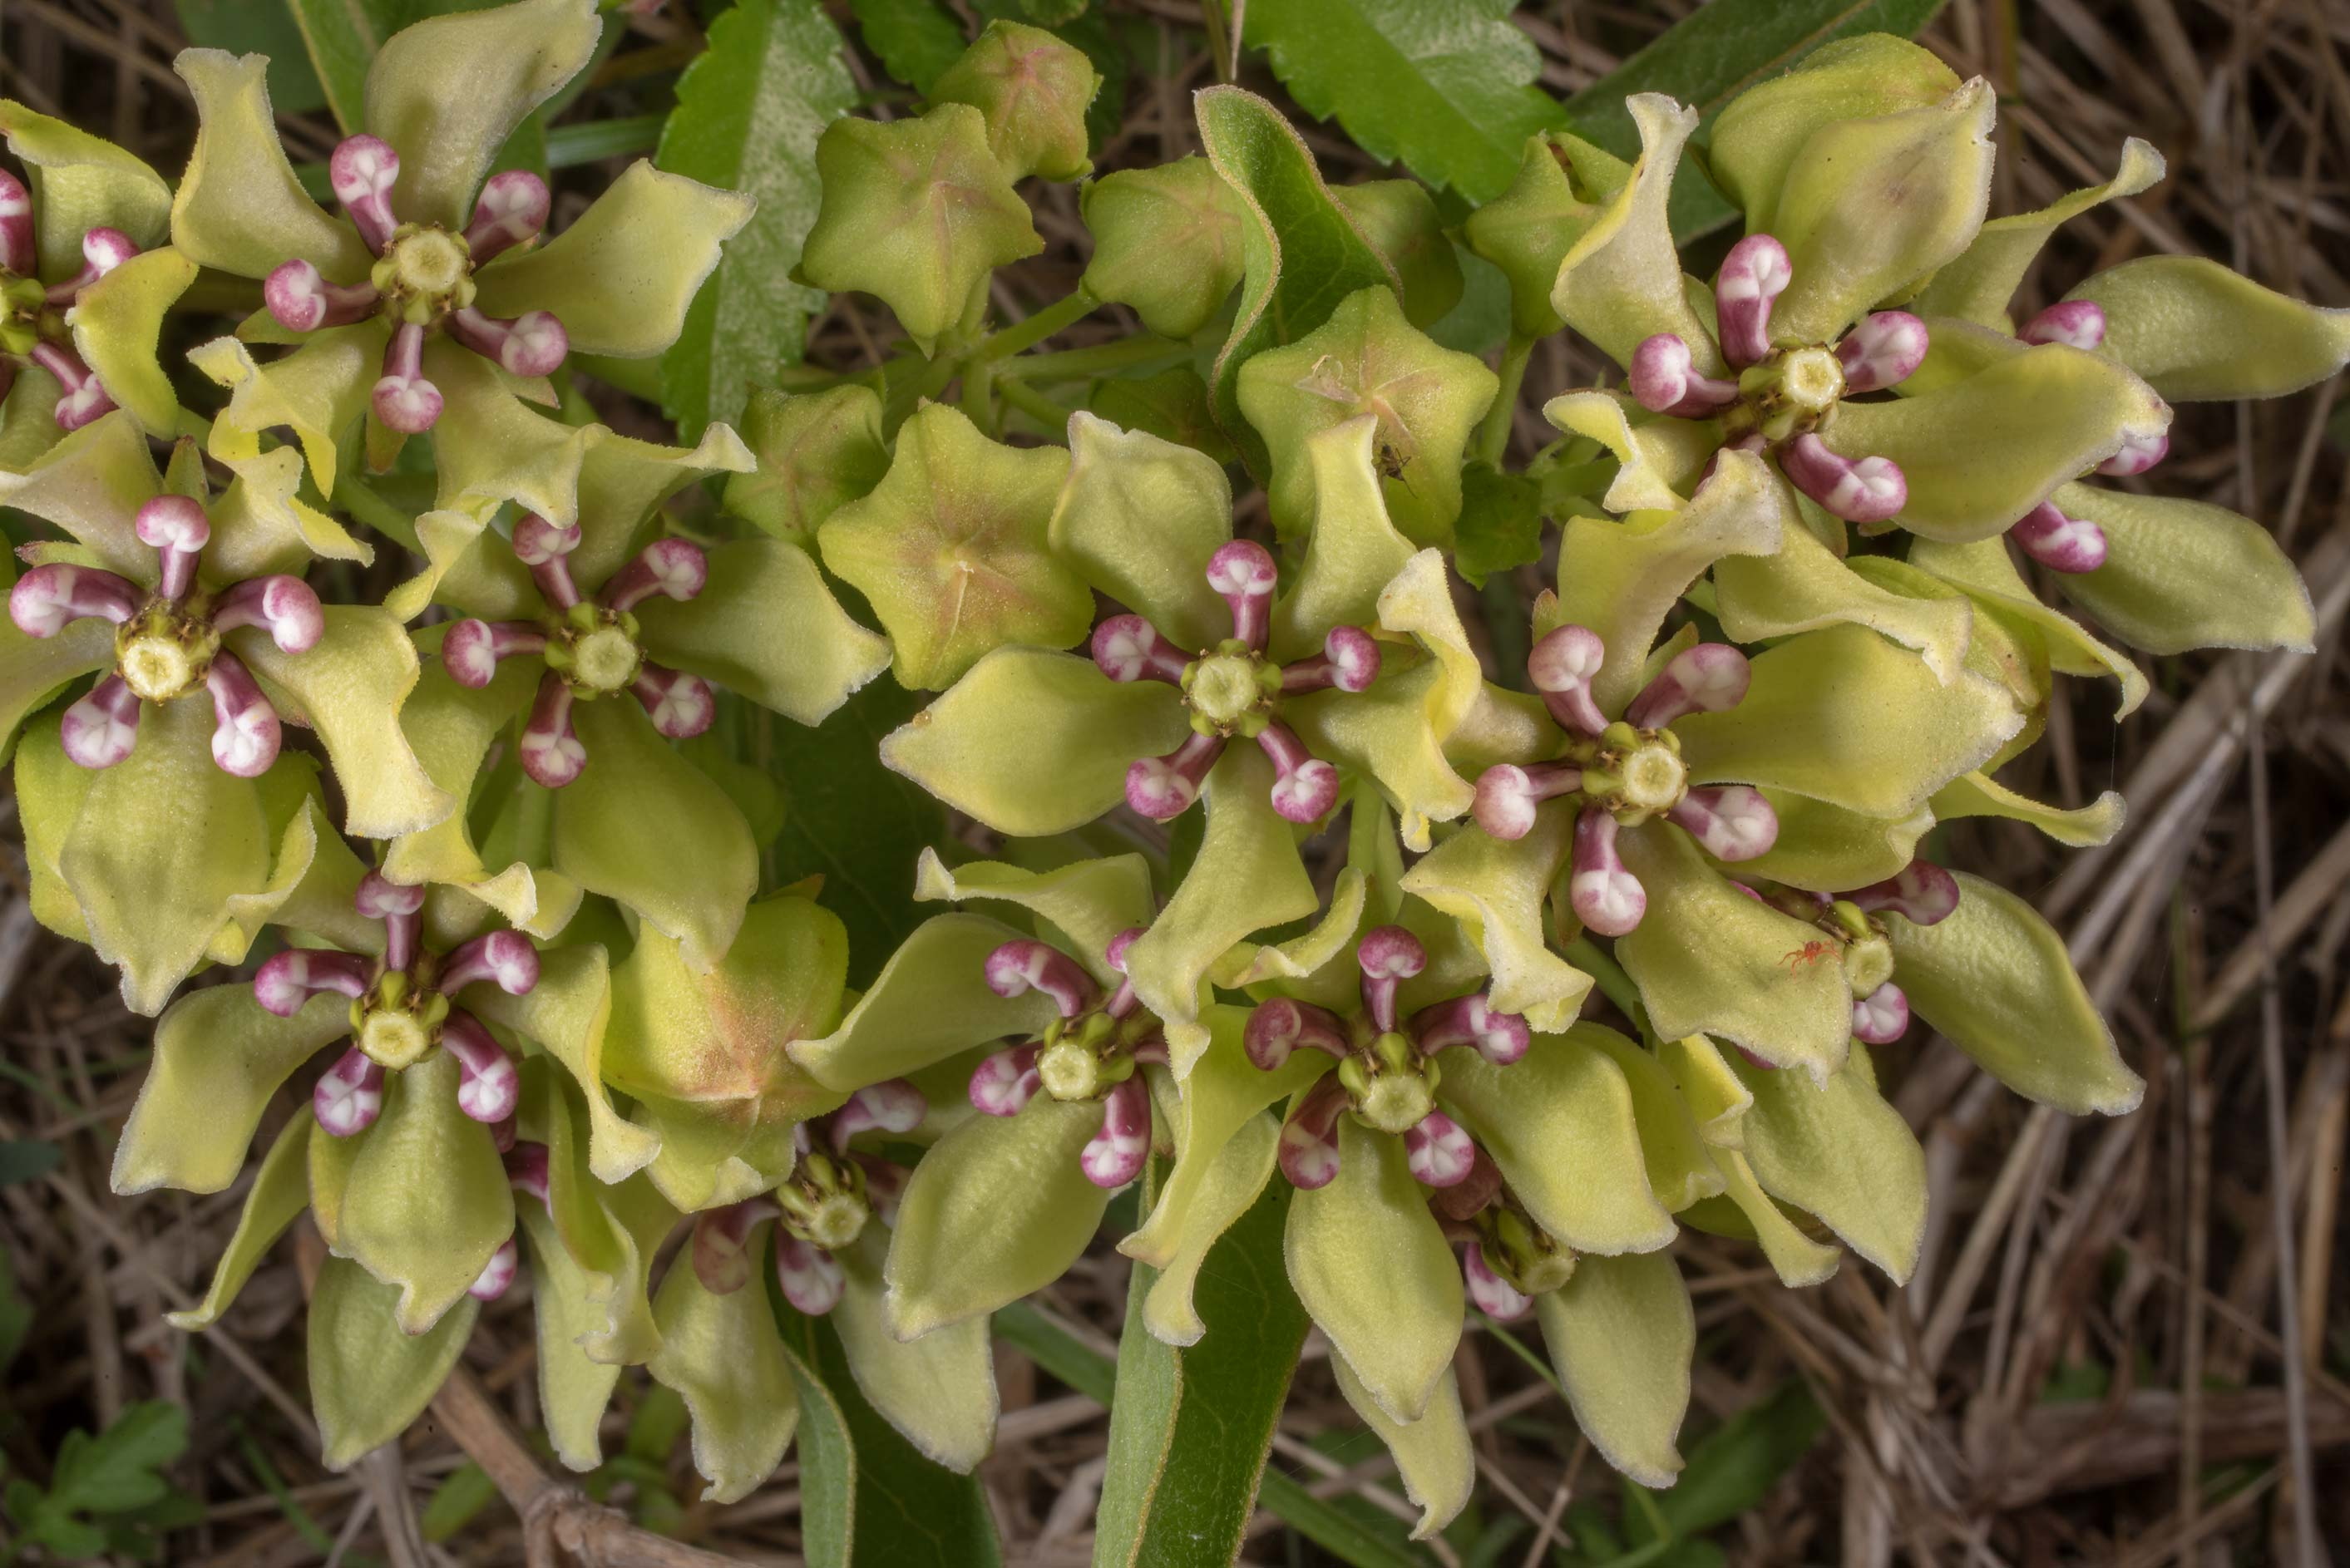 Blooming green milkweed (Asclepias viridis) in...State Historic Site. Washington, Texas